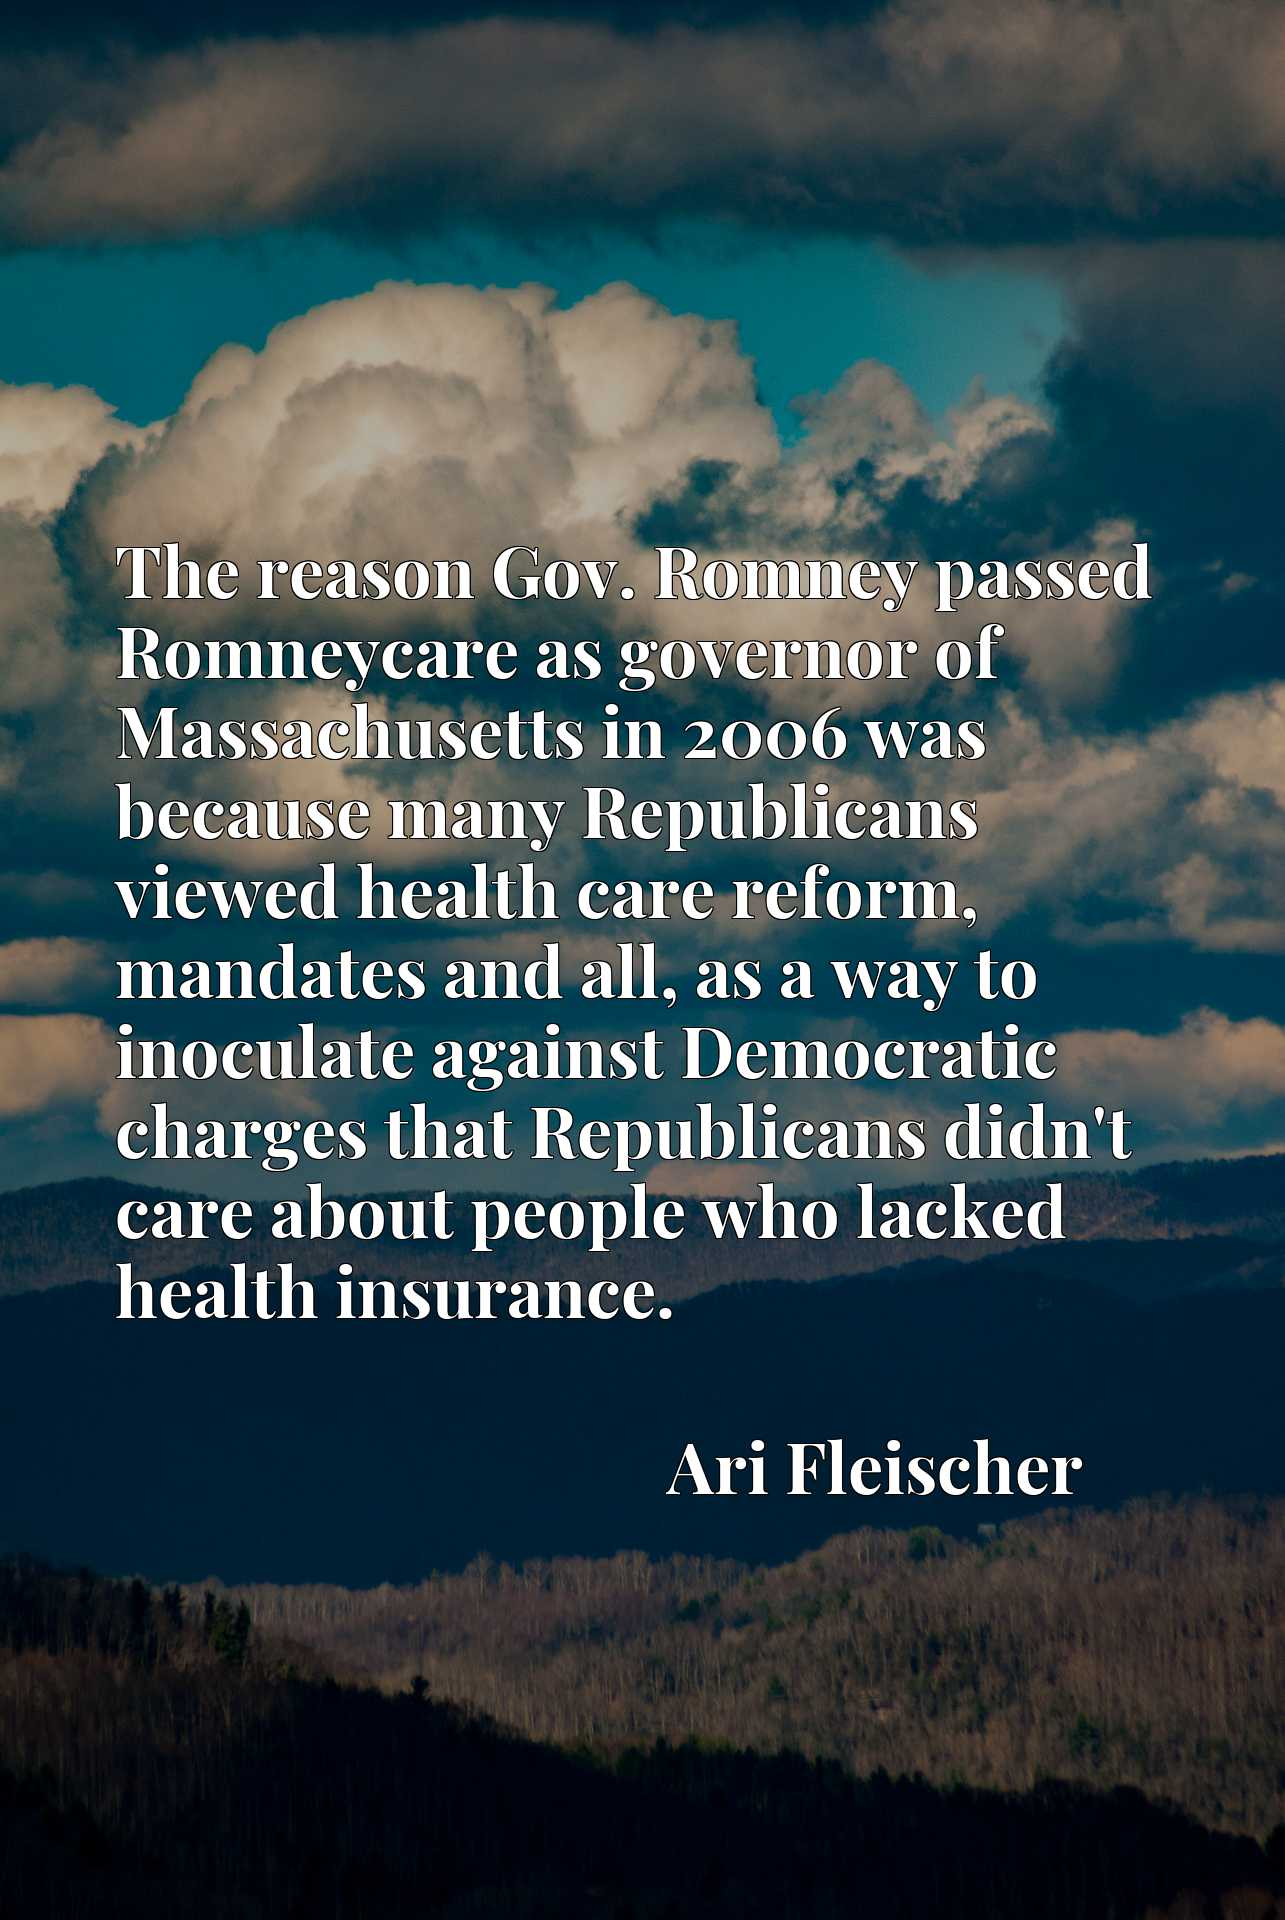 The reason Gov. Romney passed Romneycare as governor of Massachusetts in 2006 was because many Republicans viewed health care reform, mandates and all, as a way to inoculate against Democratic charges that Republicans didn't care about people who lacked health insurance.